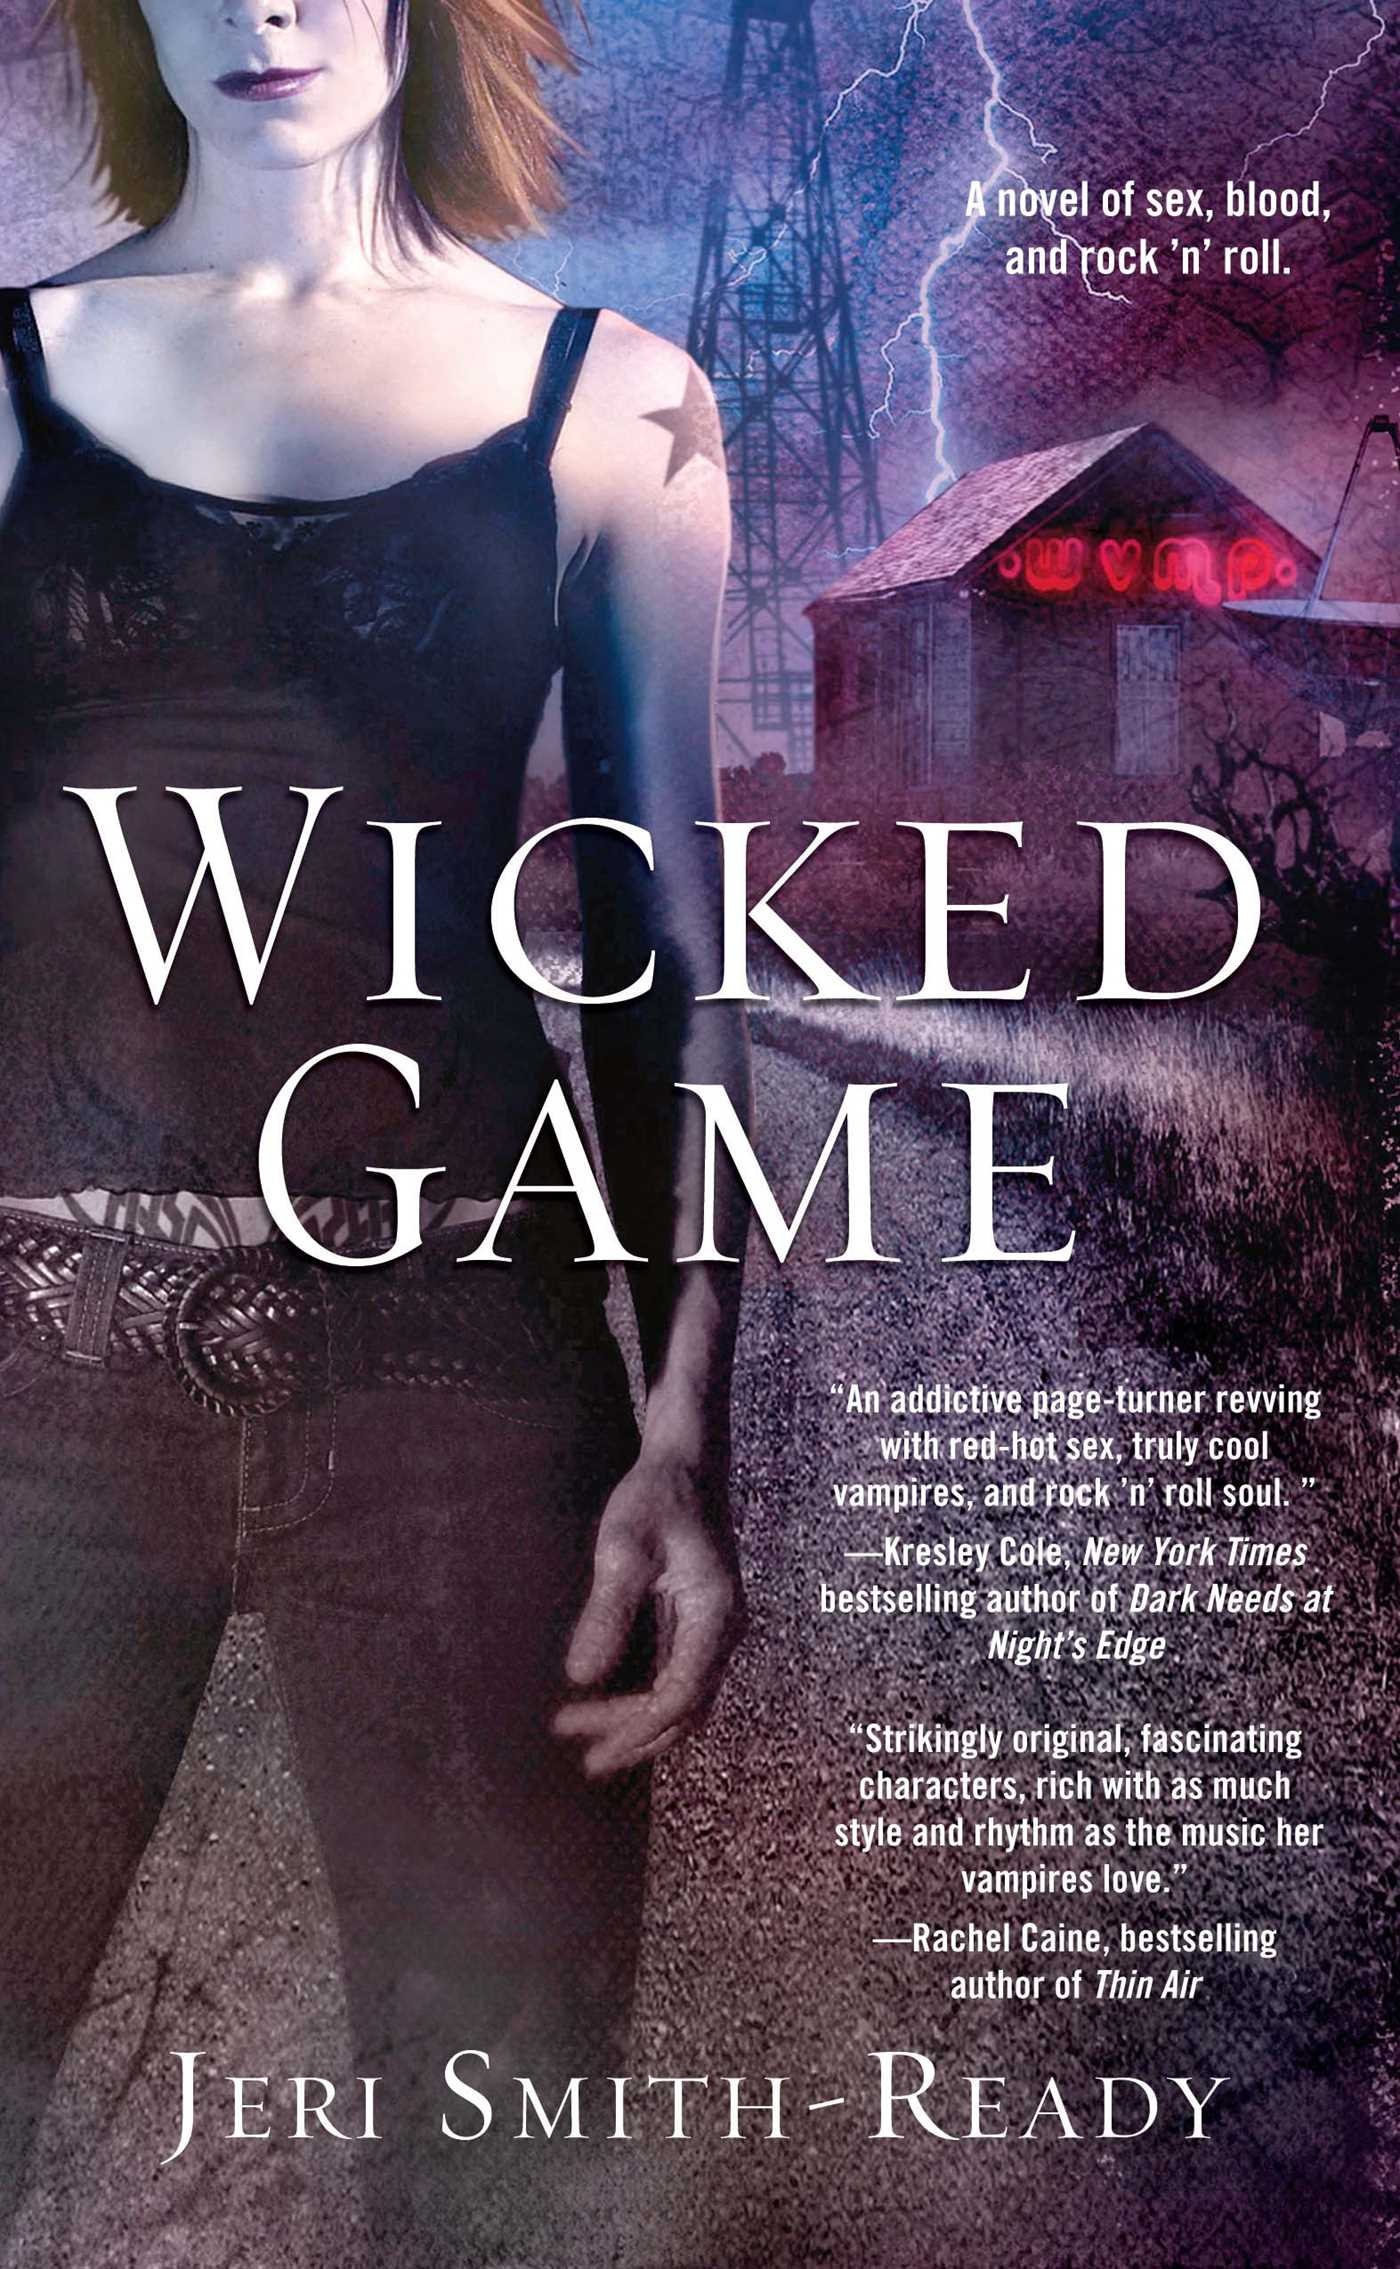 Wicked game 9781416551768 hr